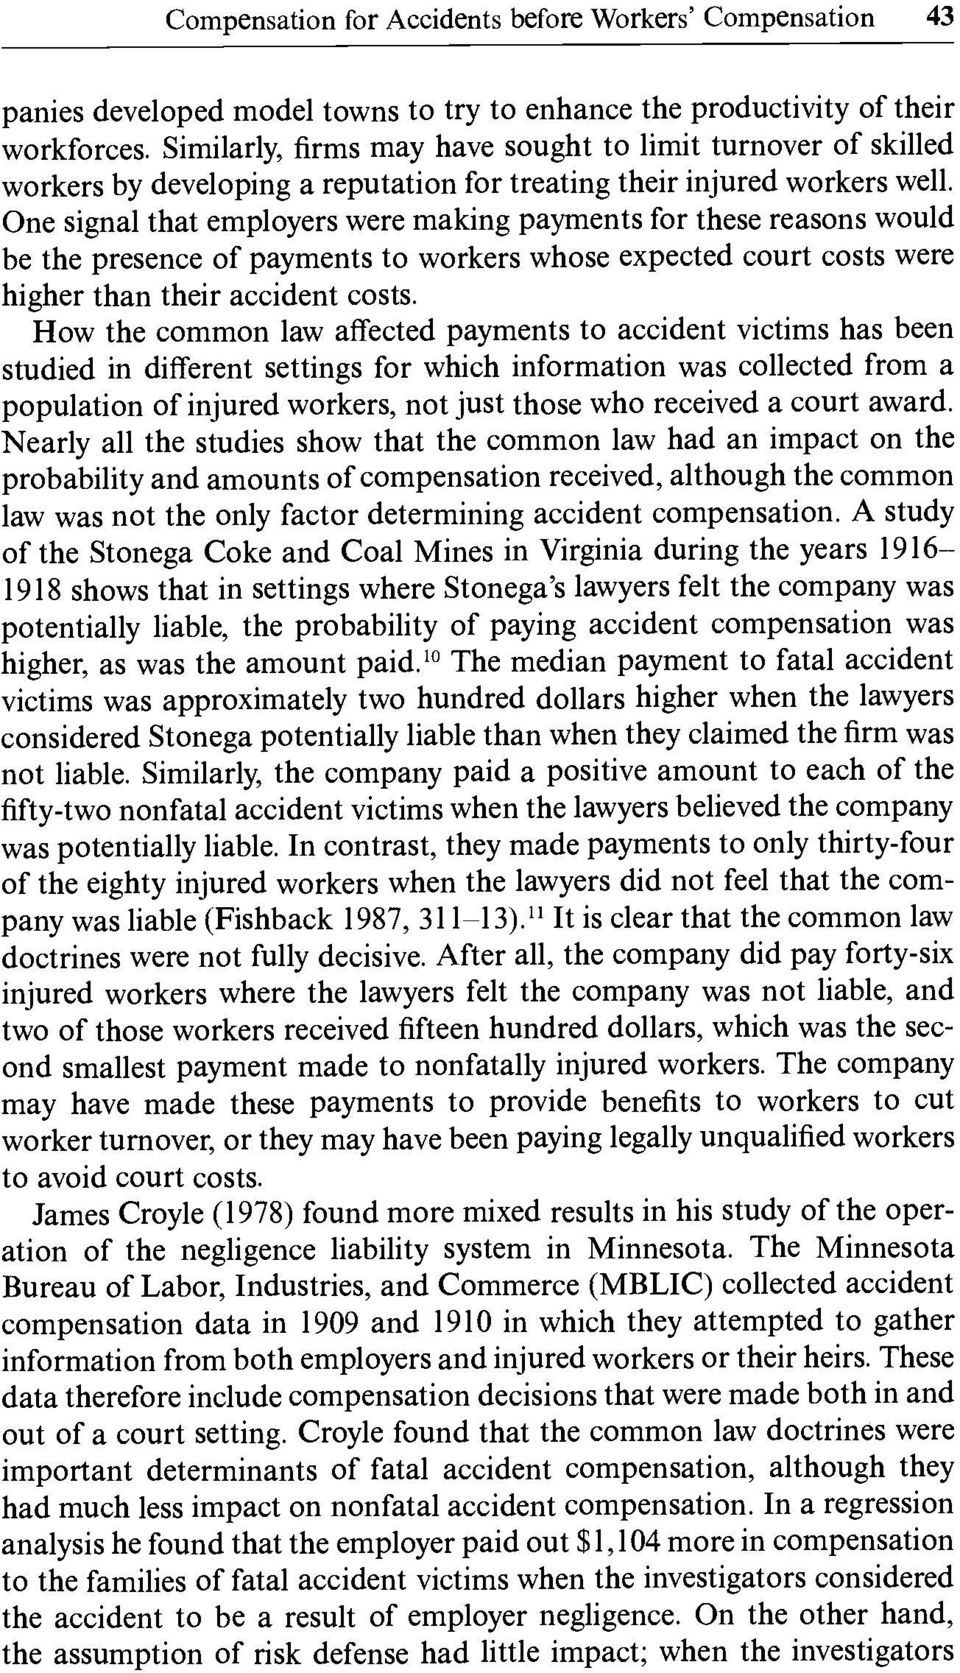 One signal that employers were making payments for these reasons would be the presence of payments to workers whose expected court costs were higher than their accident costs.